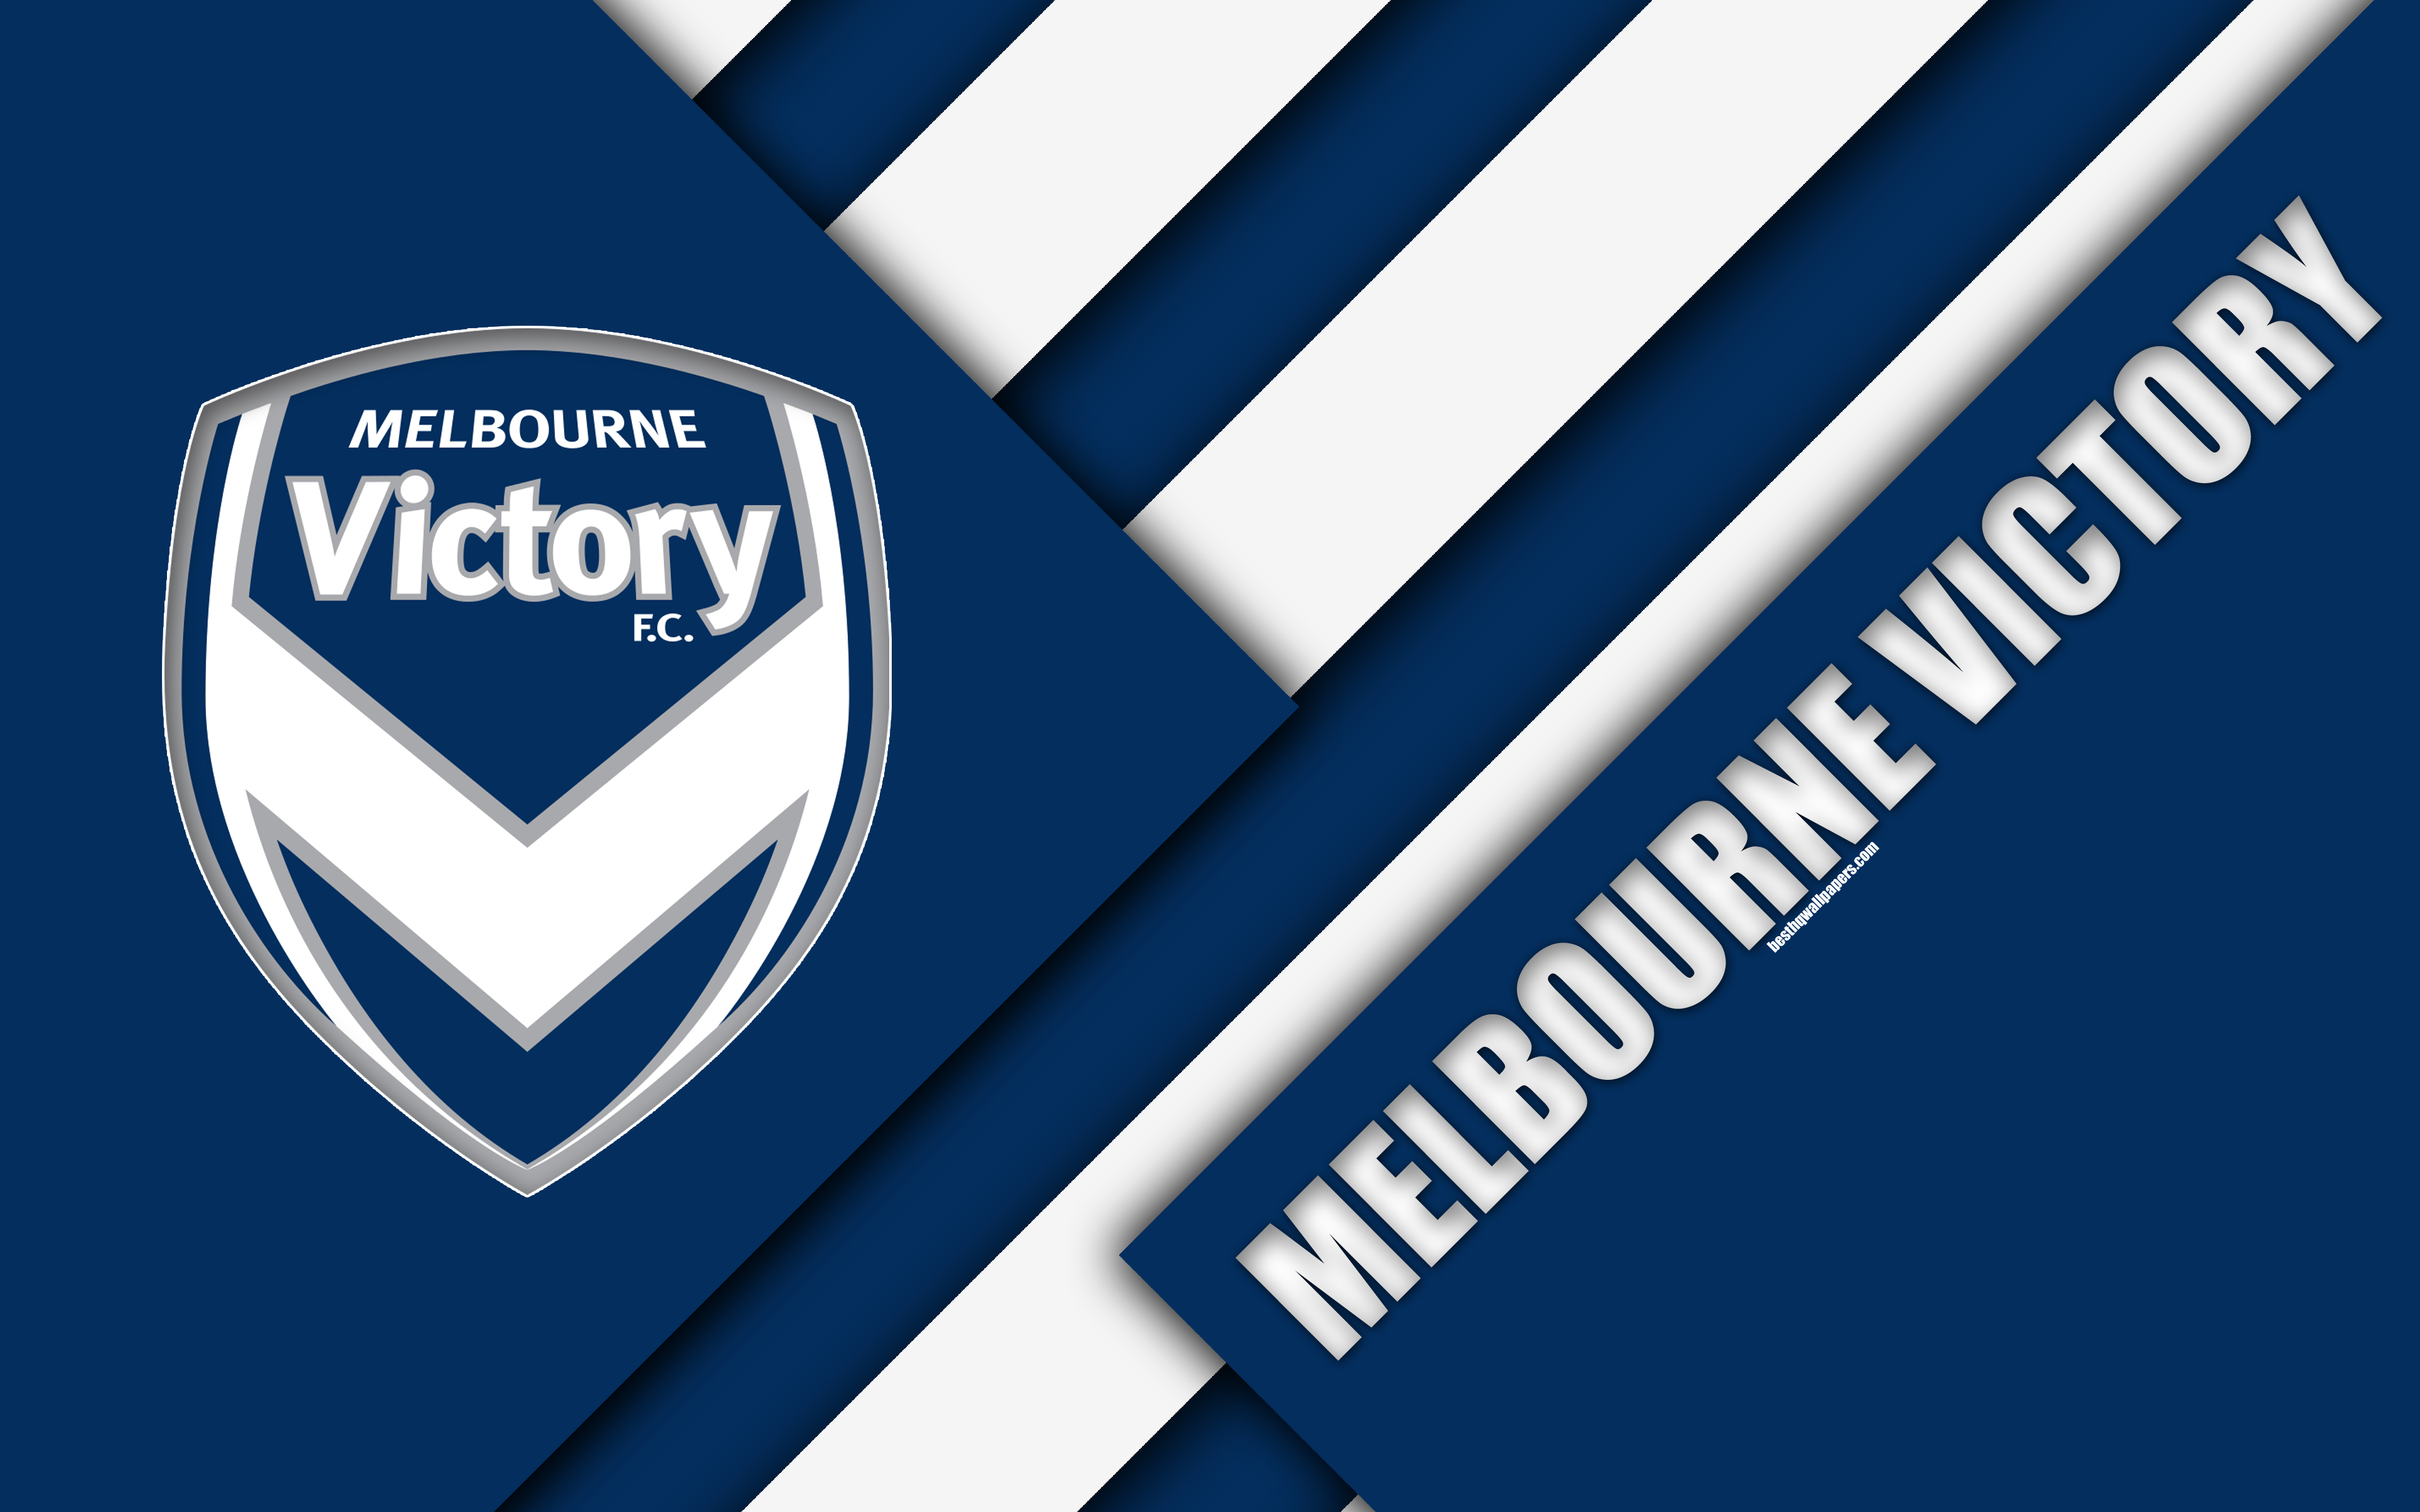 Melbourne Victory FC 4k Ultra HD Wallpaper | Background Image ...